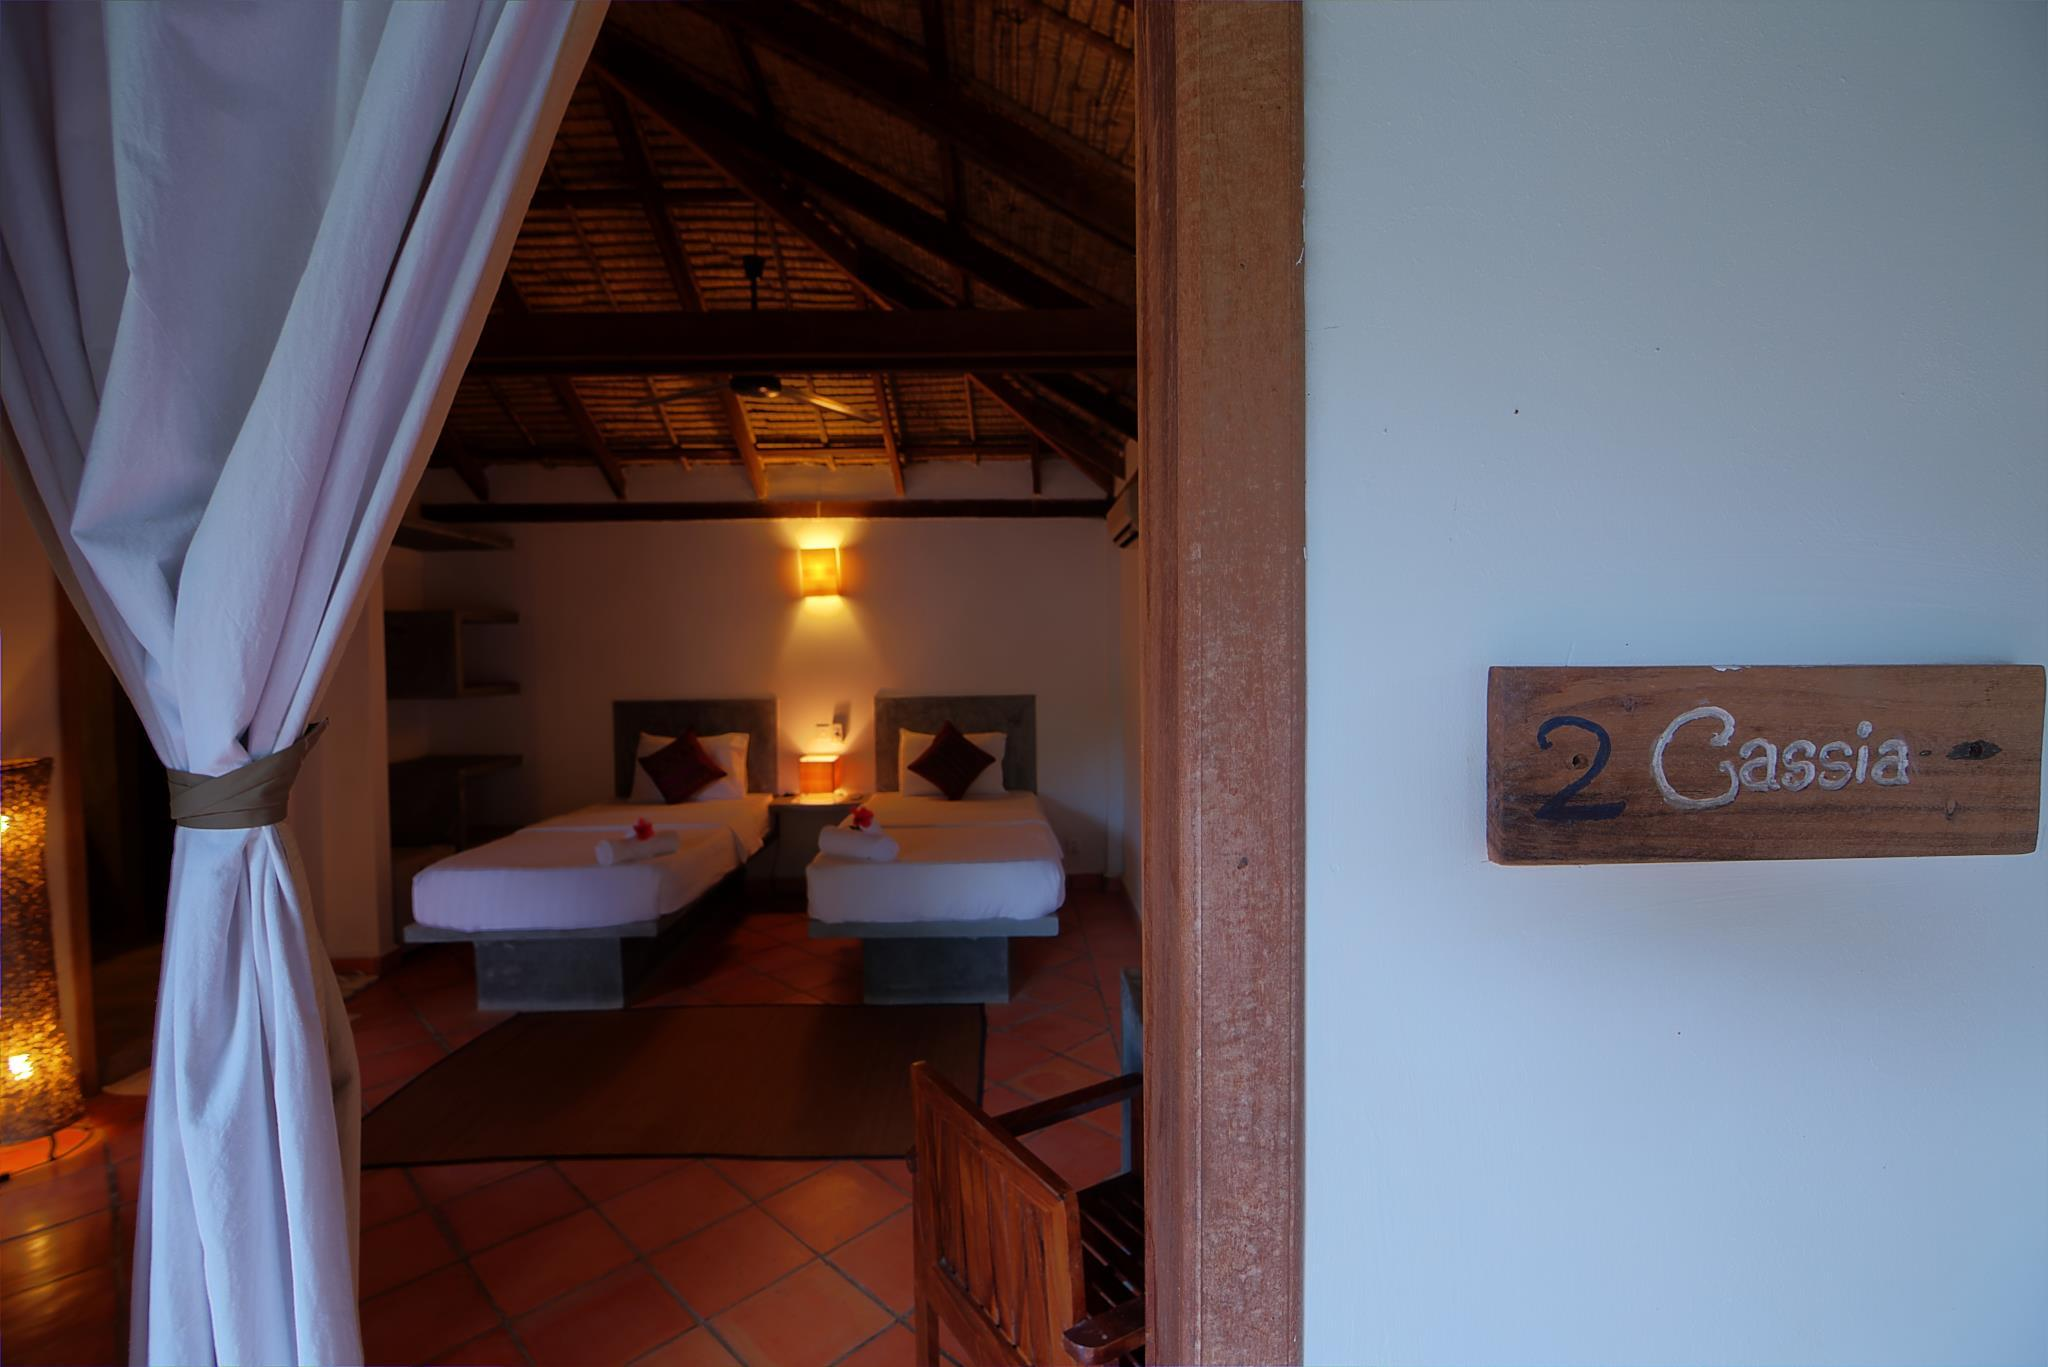 Alibaba Guest House